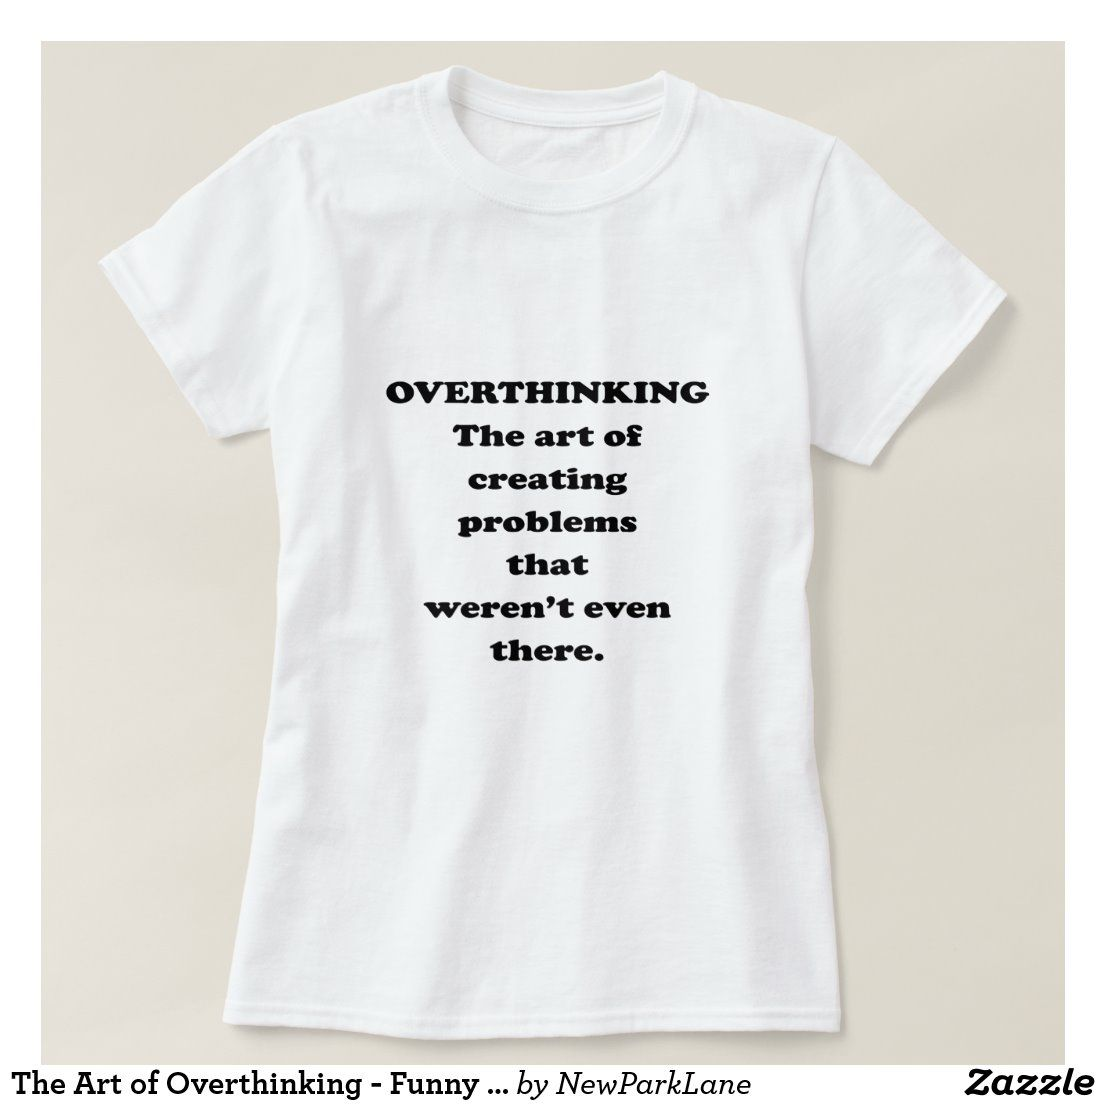 The Art of Overthinking - Funny Office Humor T-Shirt | Zazzle.com